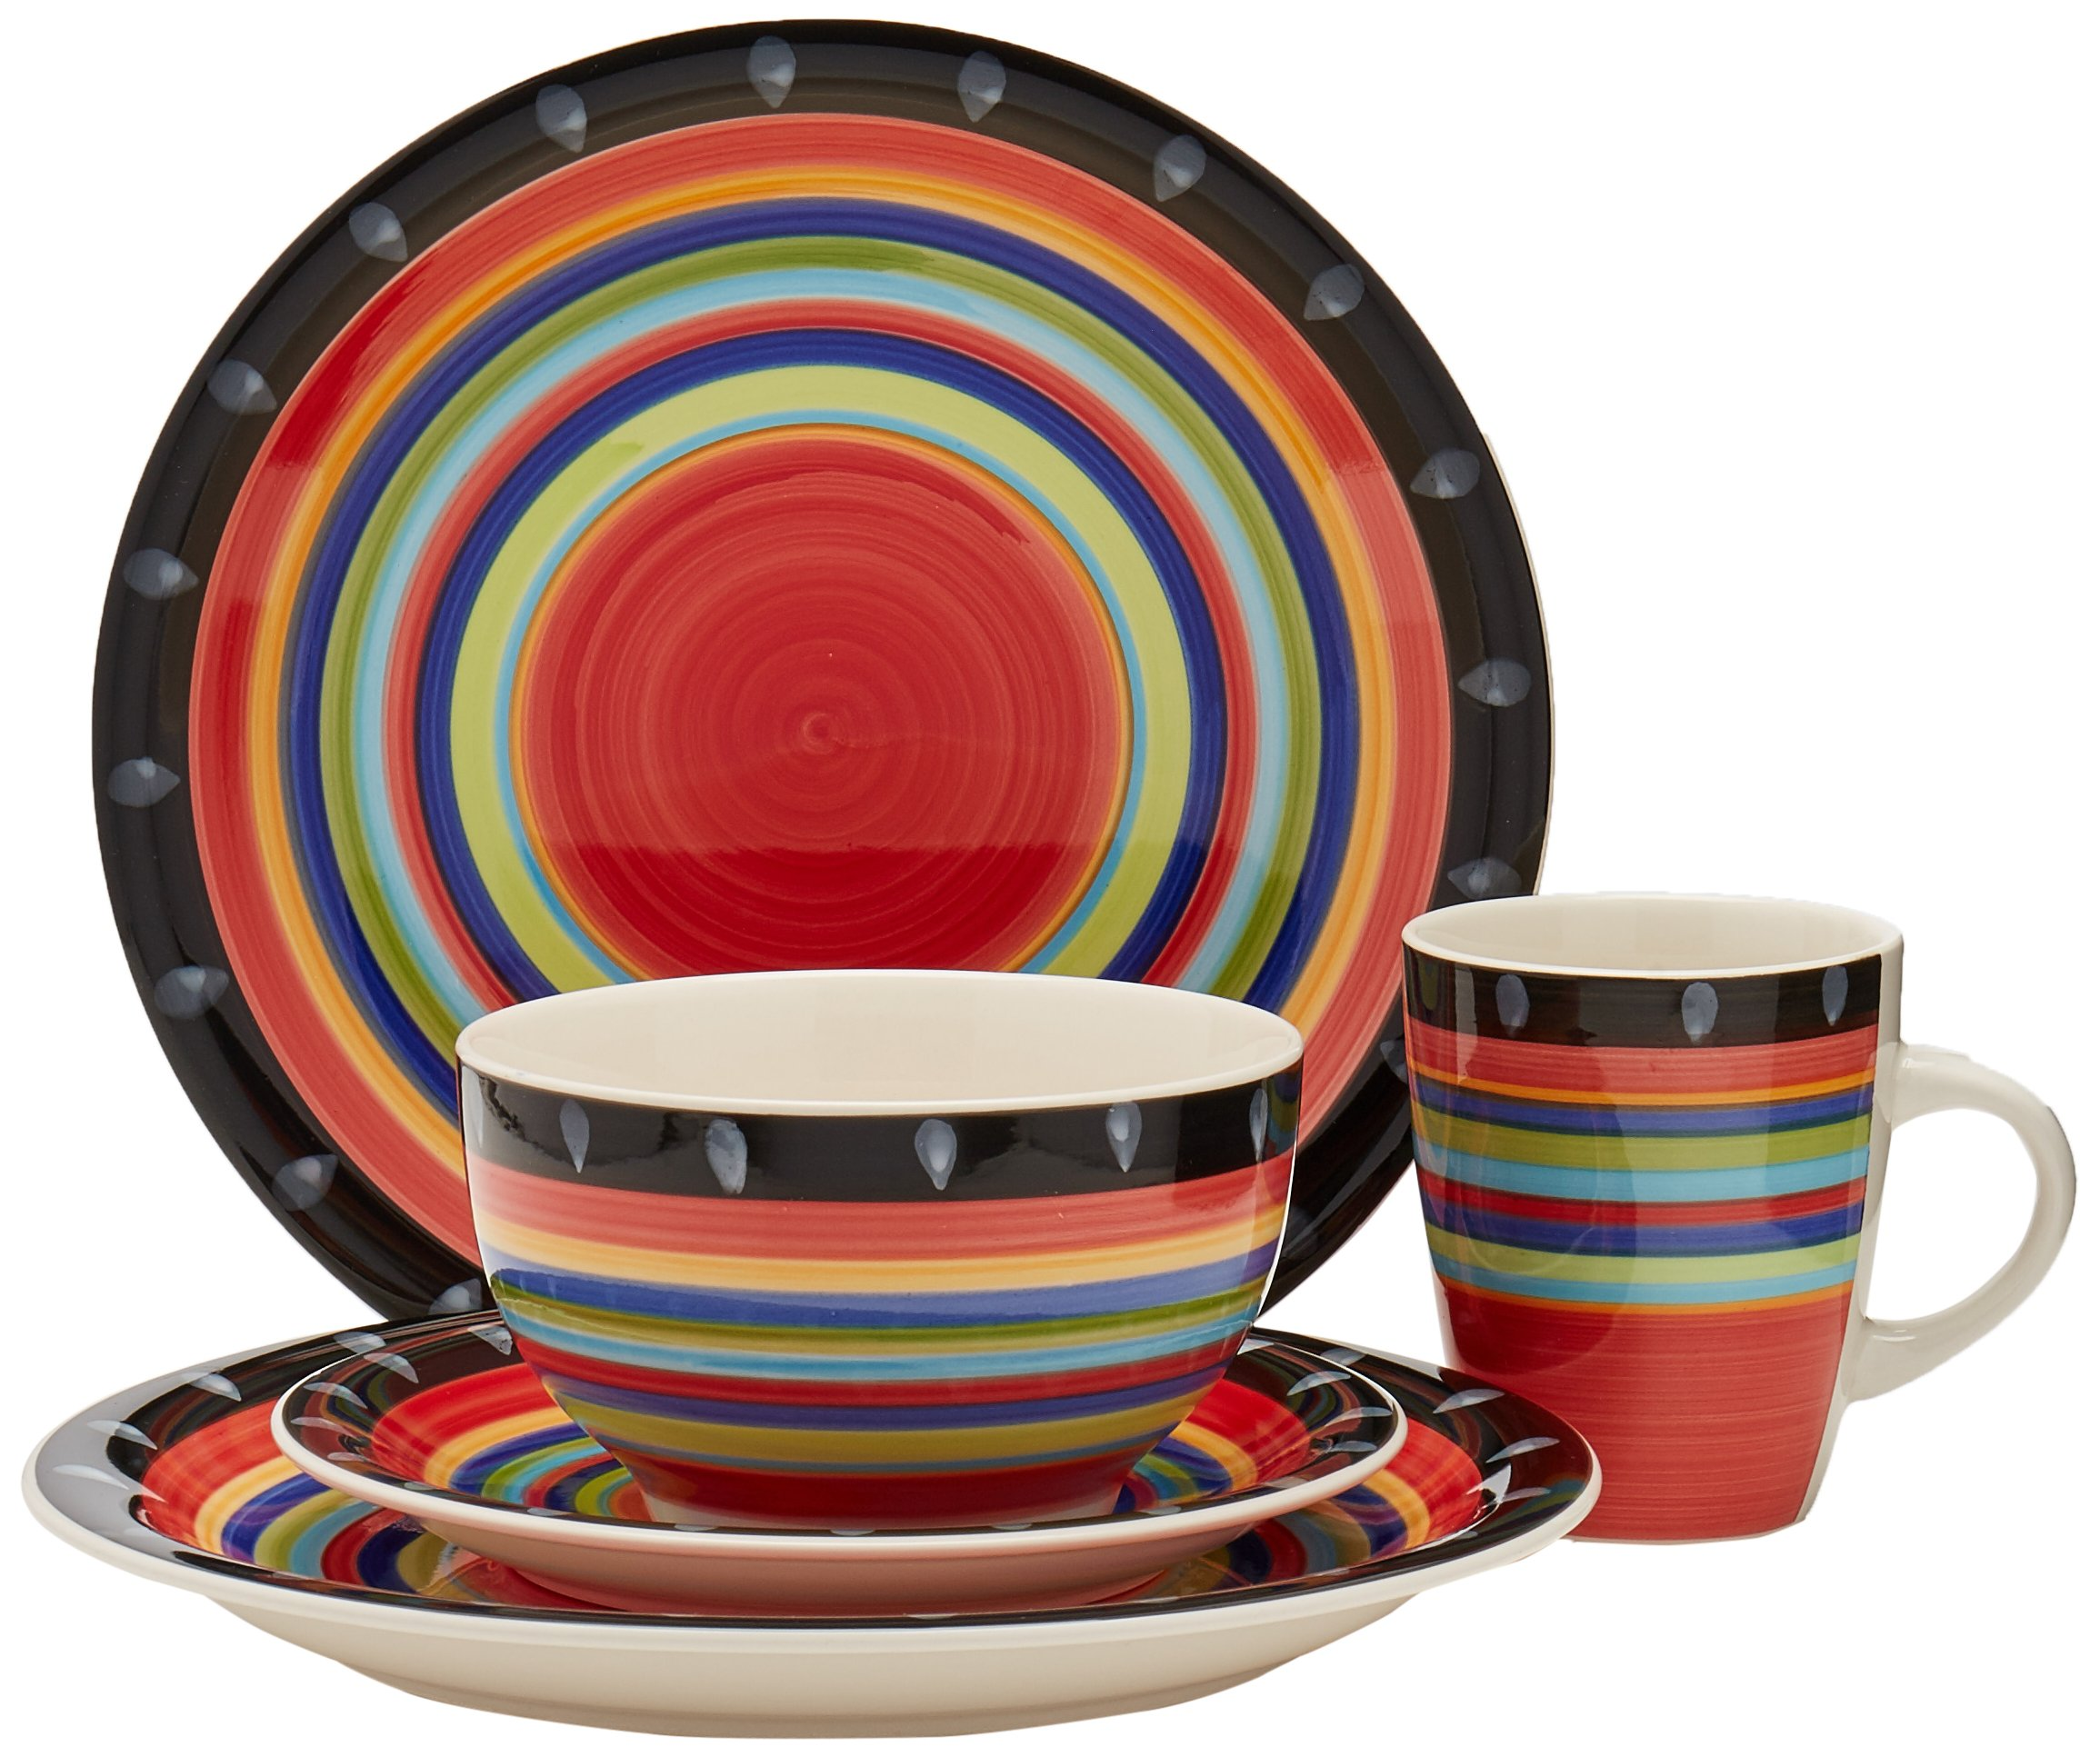 Gibson Home 97694.16r Casa Stella 16-Piece Dinnerware Set, Red by Gibson Home (Image #1)